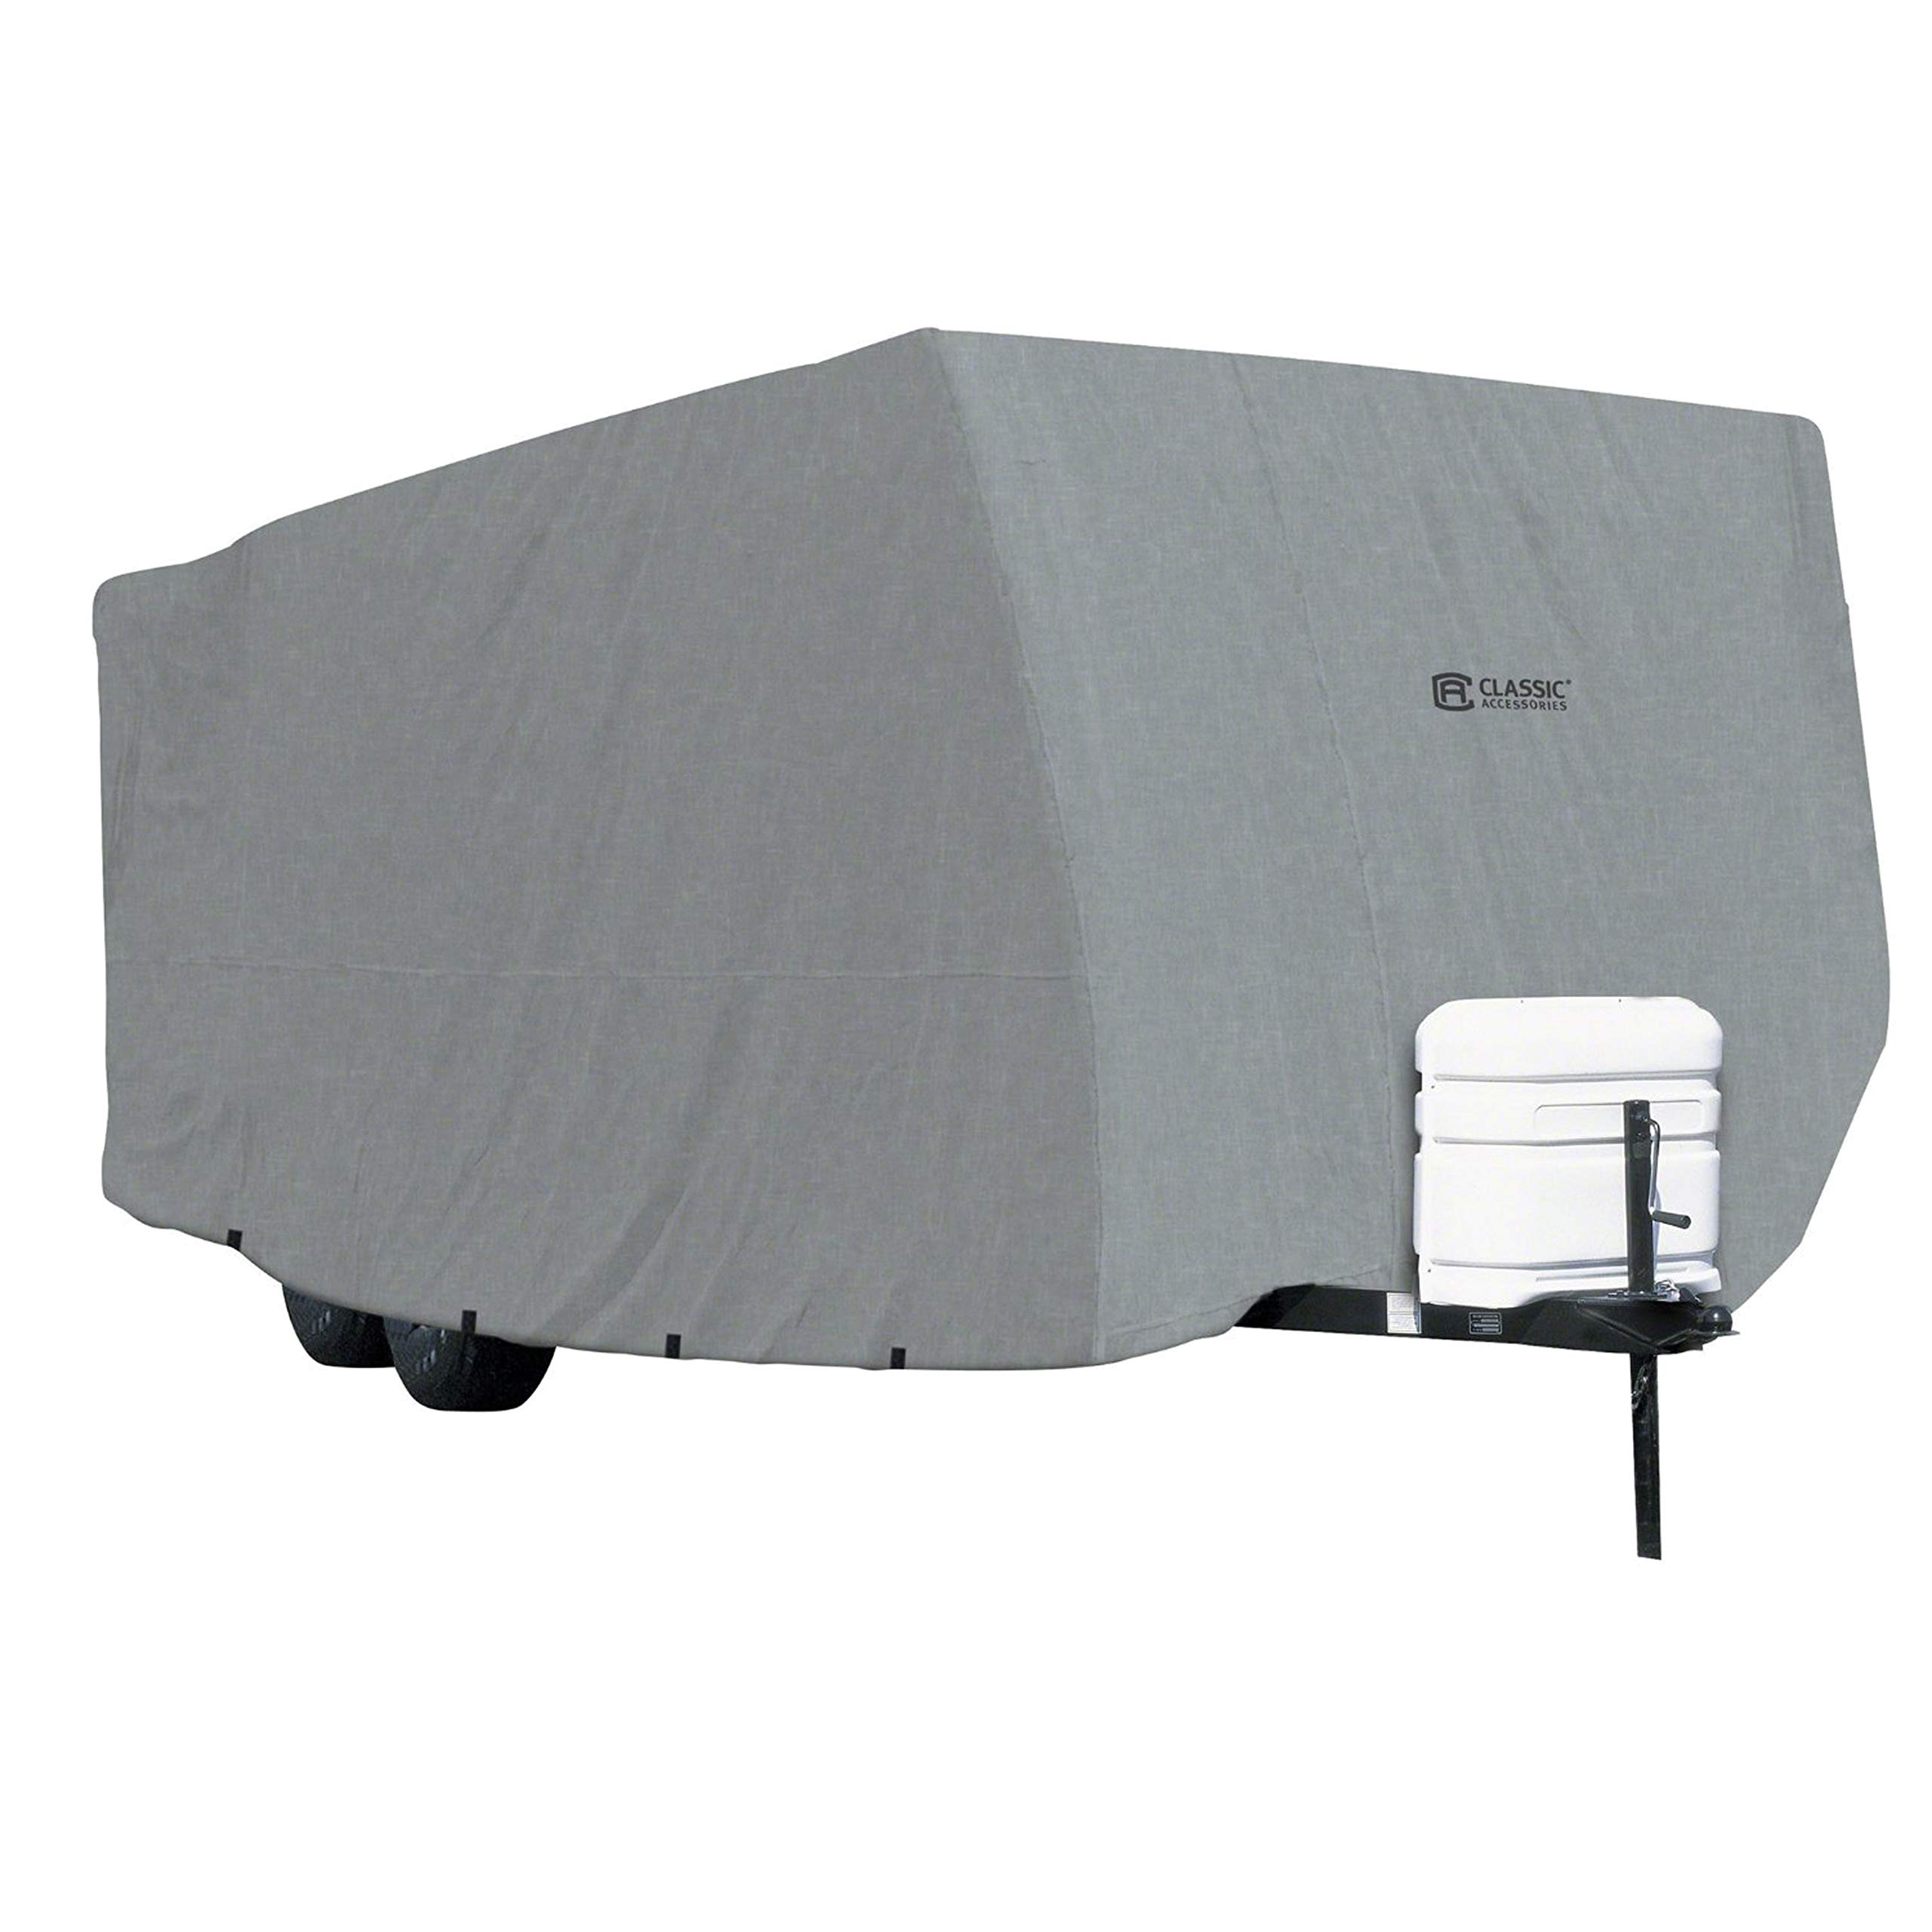 Classic Accessories OverDrive PolyPro 1 Cover for 35' to 38' Travel Trailers by Classic Accessories